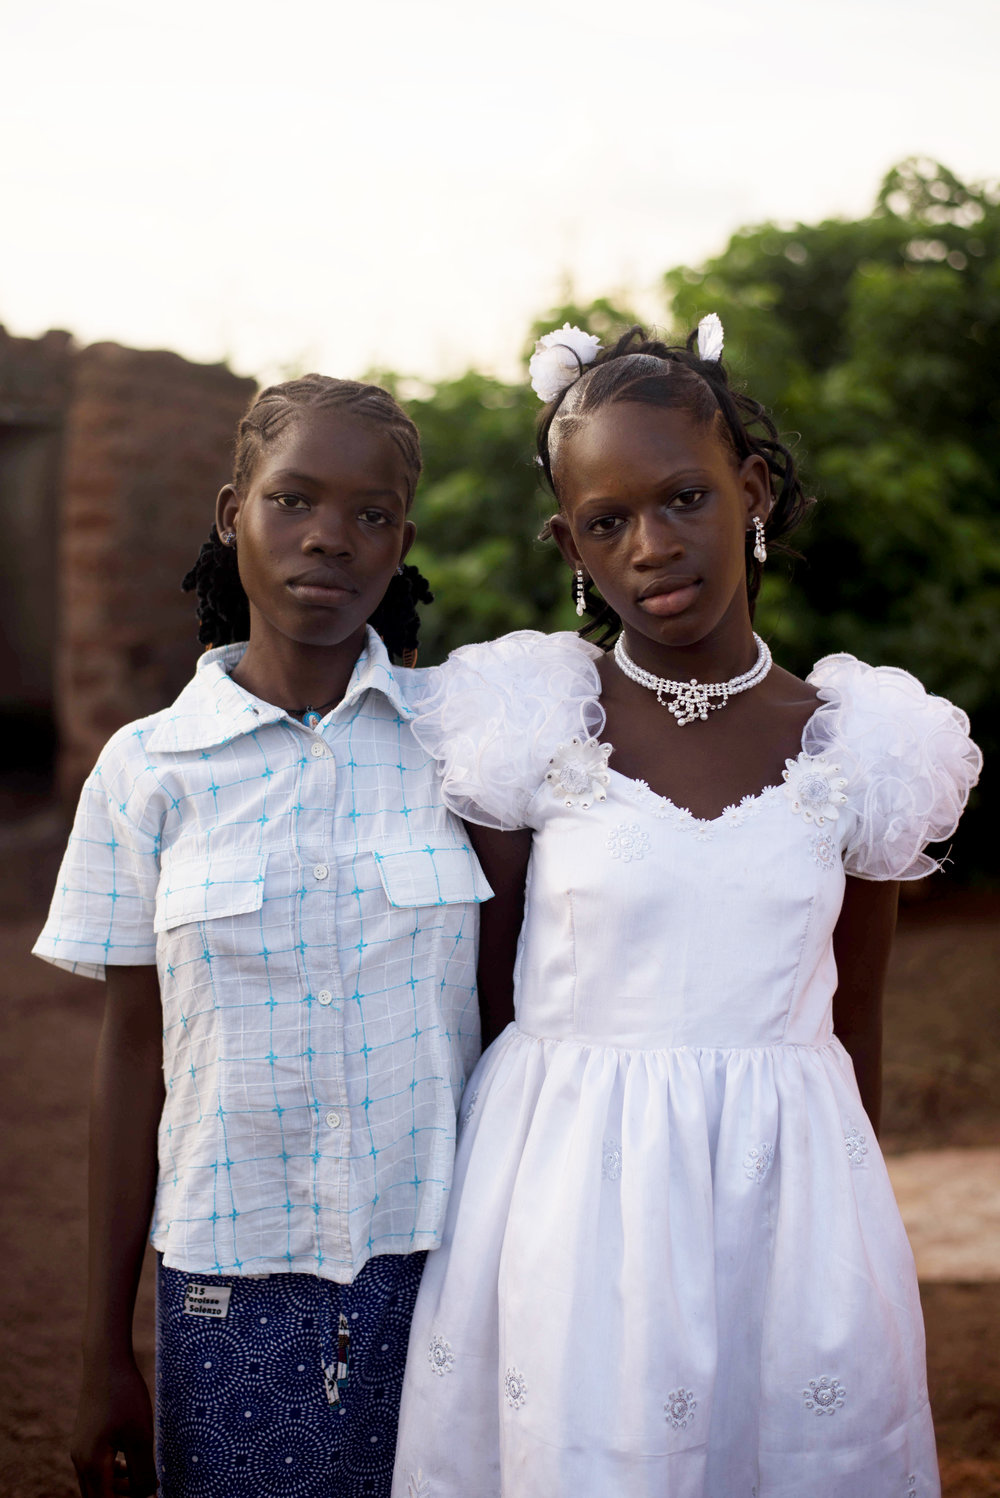 Badjah (left) and Kevine (right), Rita's daughter, on the day of Kevine's baptism.